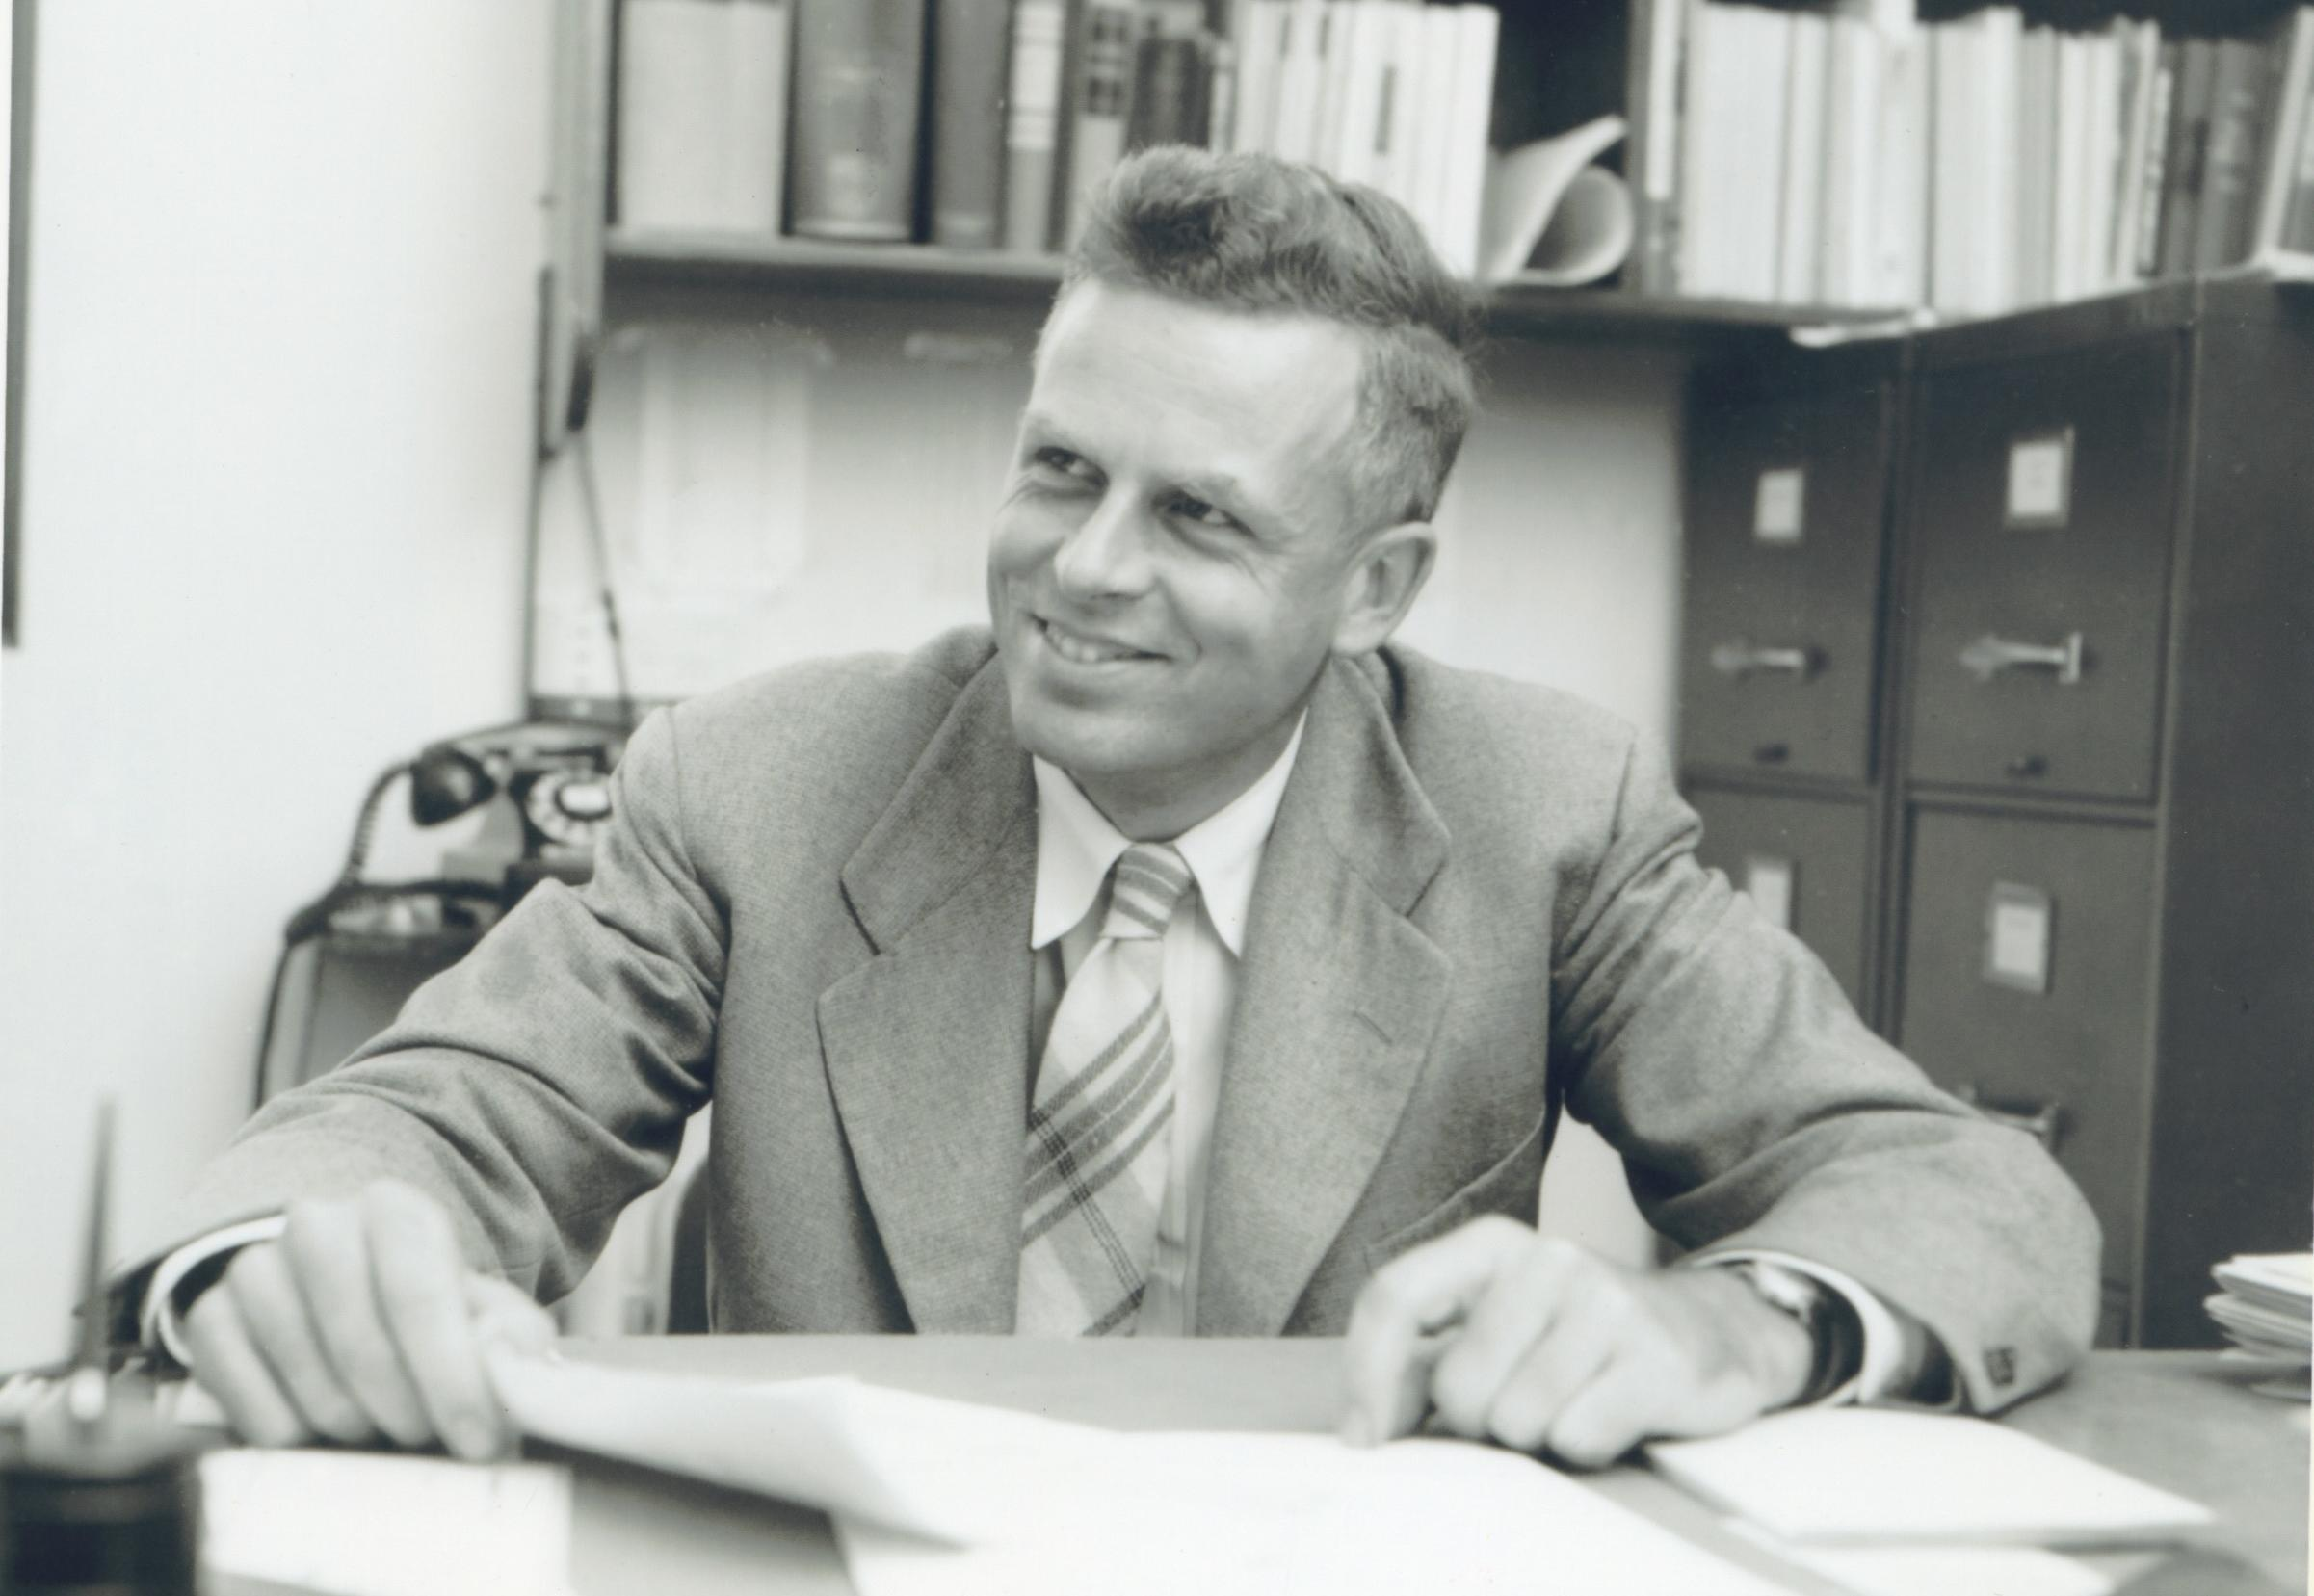 Kenneth Sanborn Pitzer